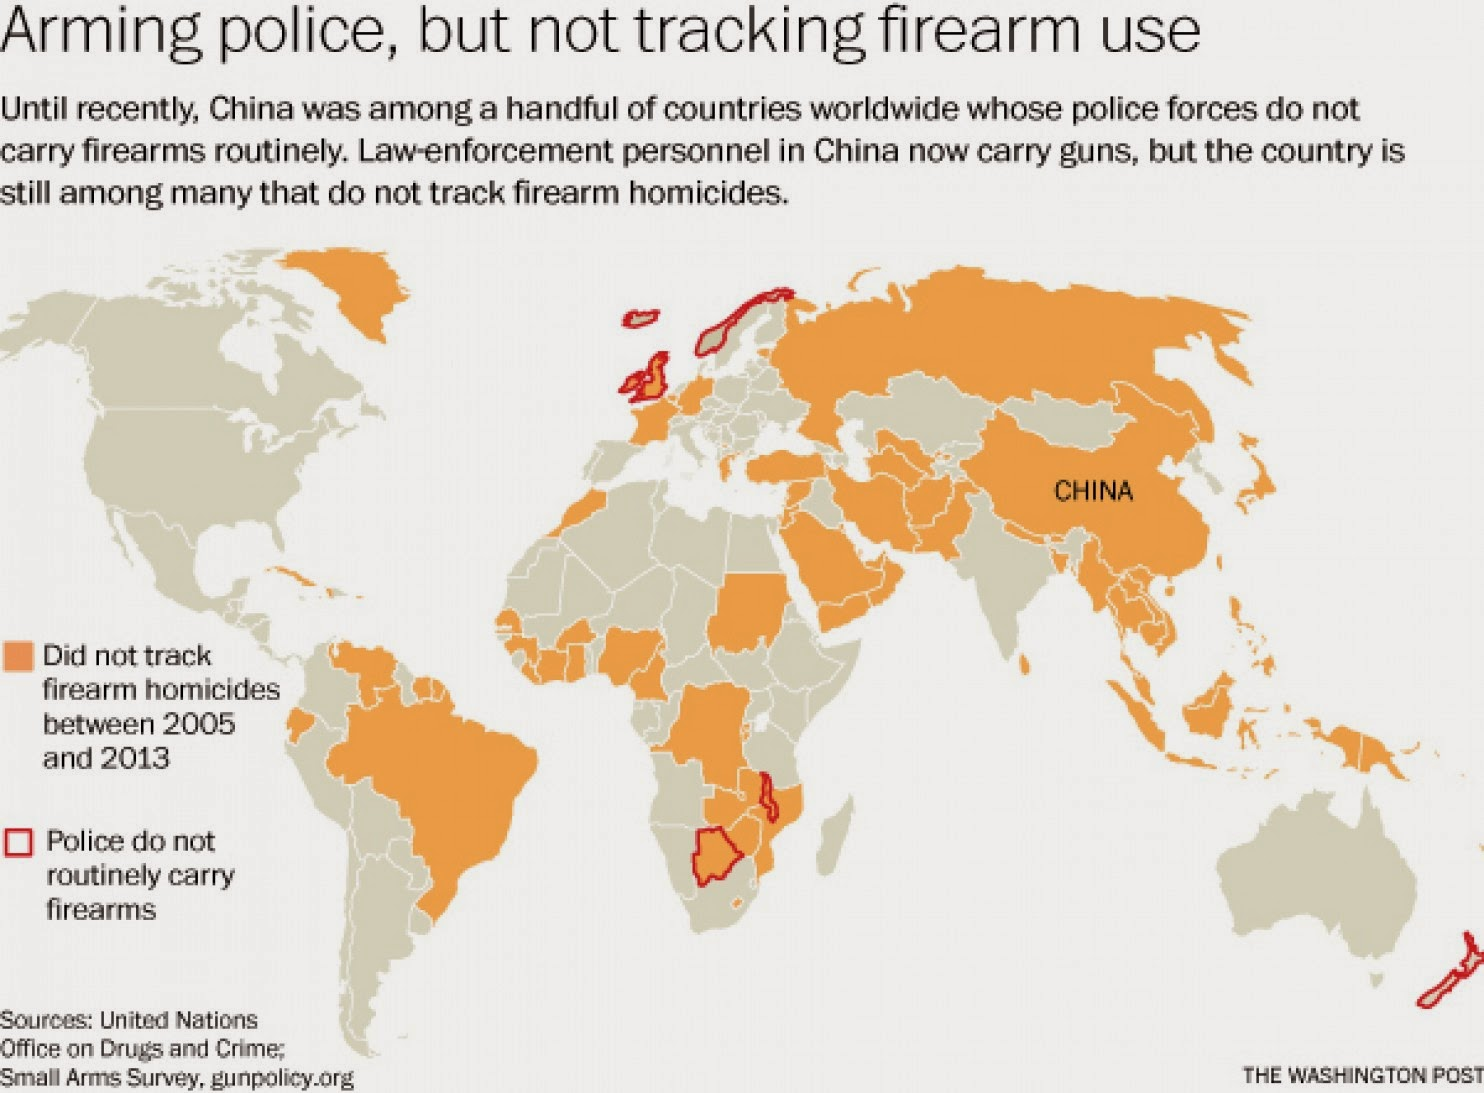 the gun control blog mikeb323000 has done an excellent job over the years documenting the dangers associated with firearms both in the hands of legal and